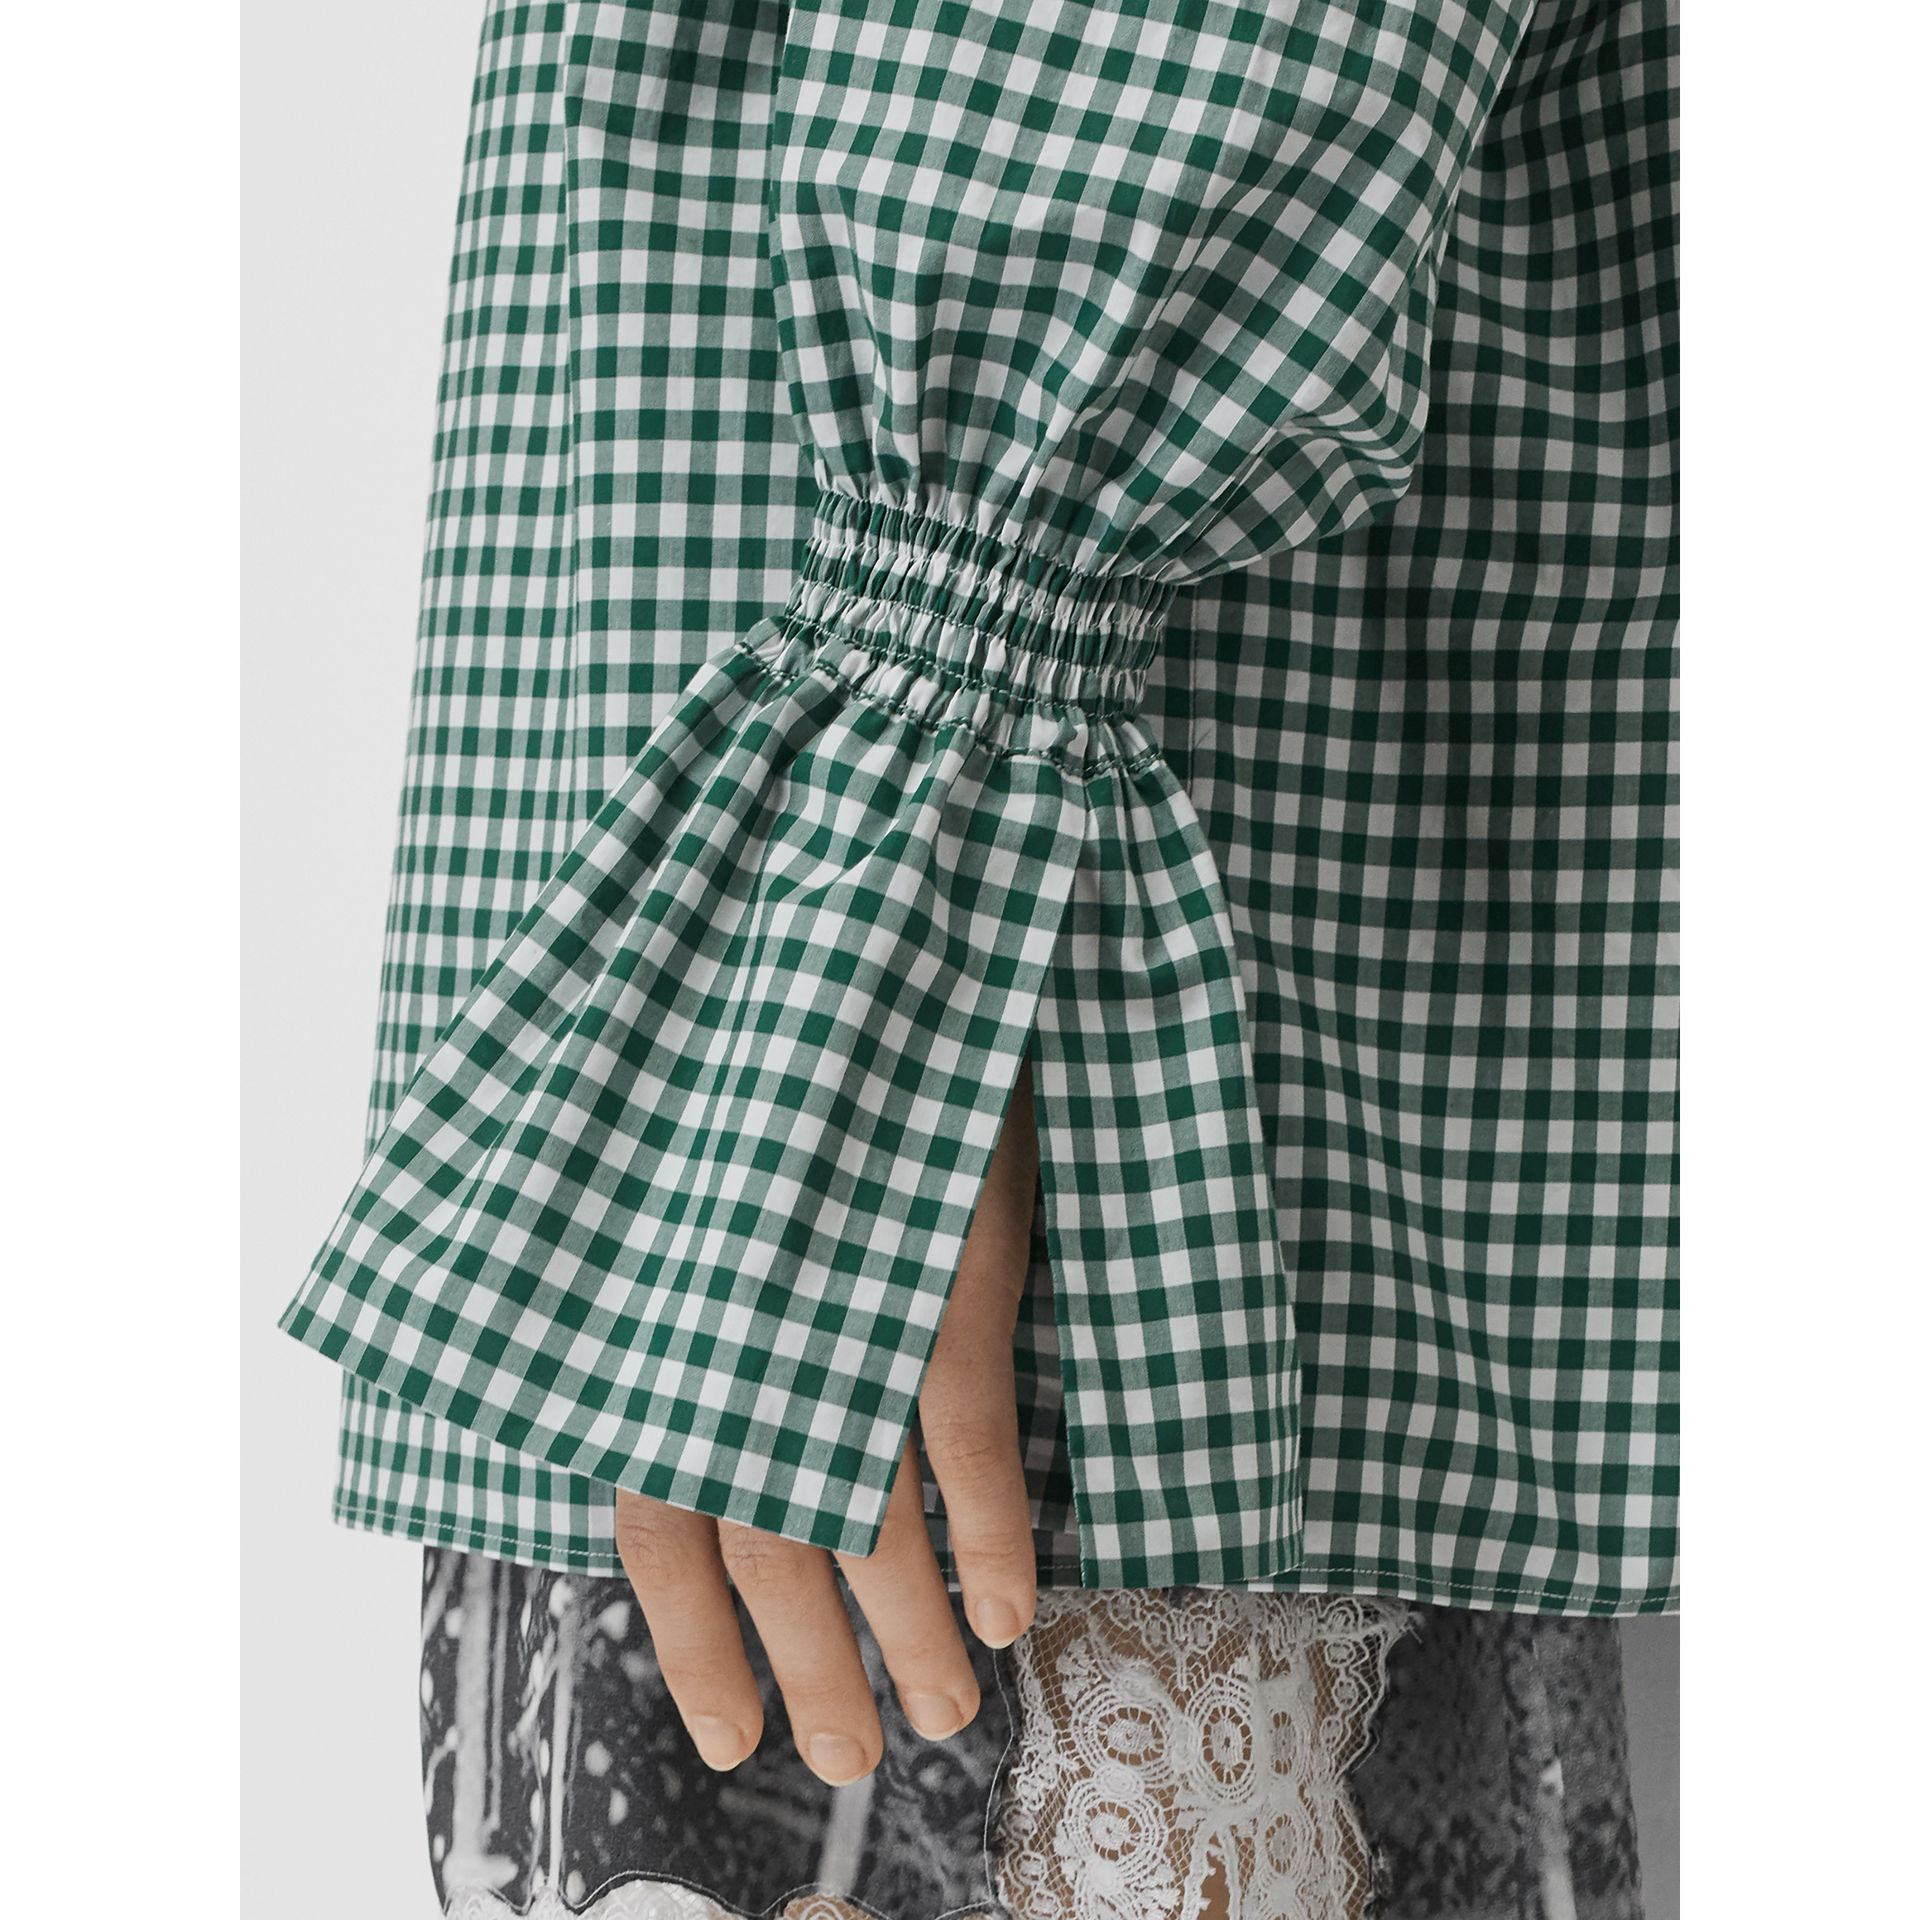 Puff-sleeve Gingham Cotton Oversized Shirt in White/green - Women | Burberry - gallery image 1